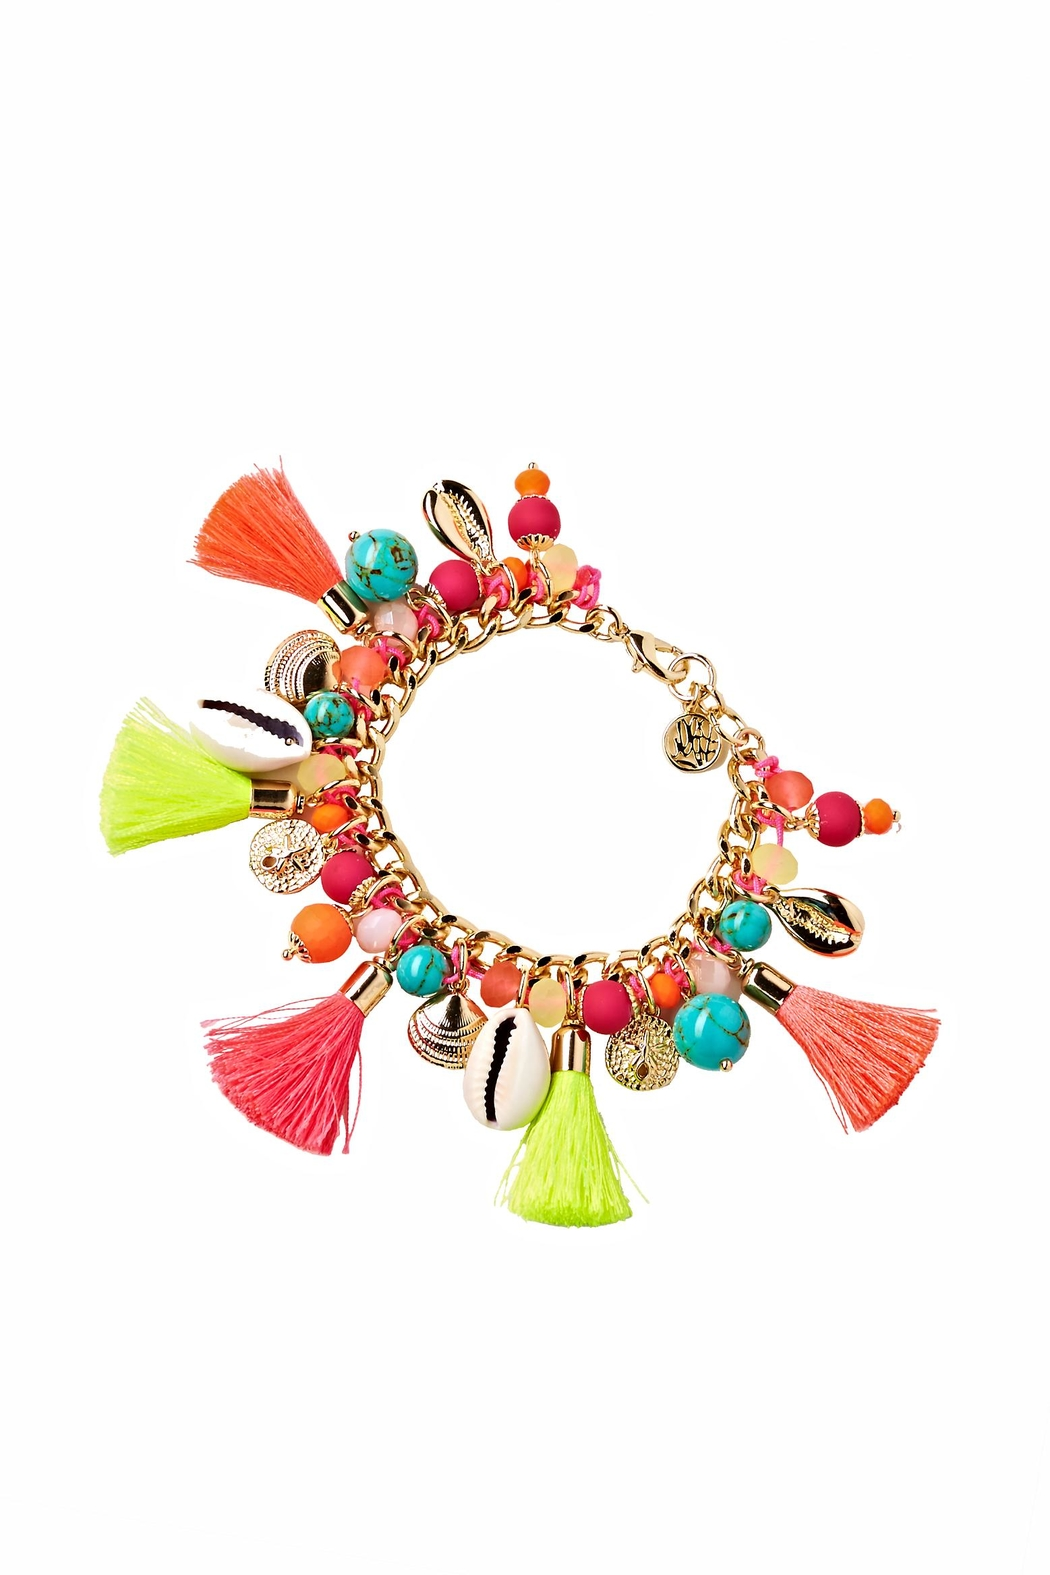 vavavida beach yellow edit goa products bracelet img